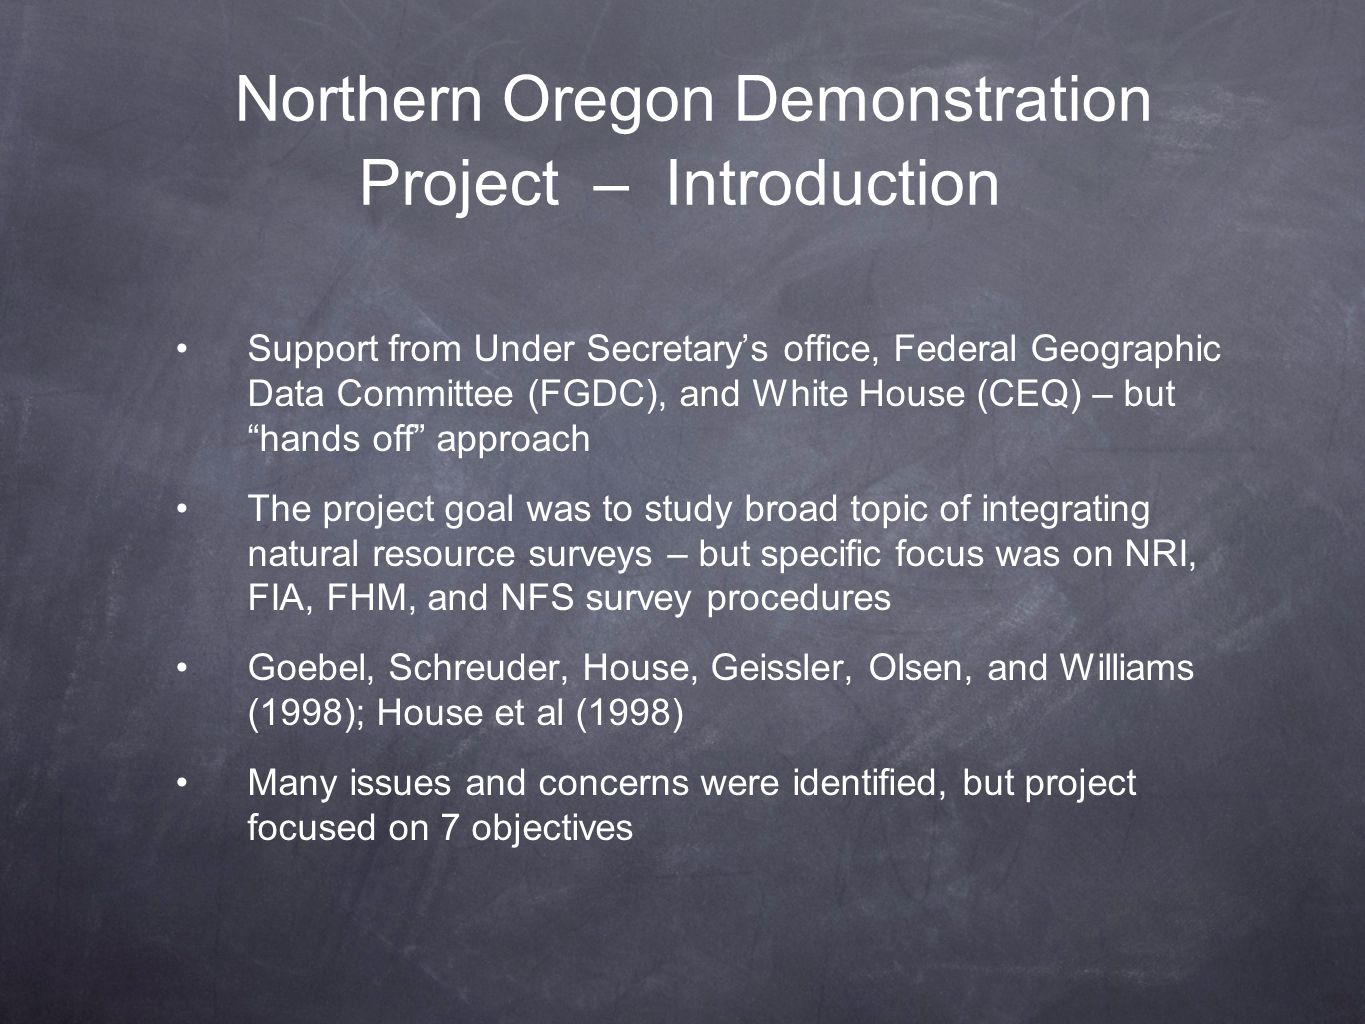 Northern Oregon Demonstration Project – Introduction